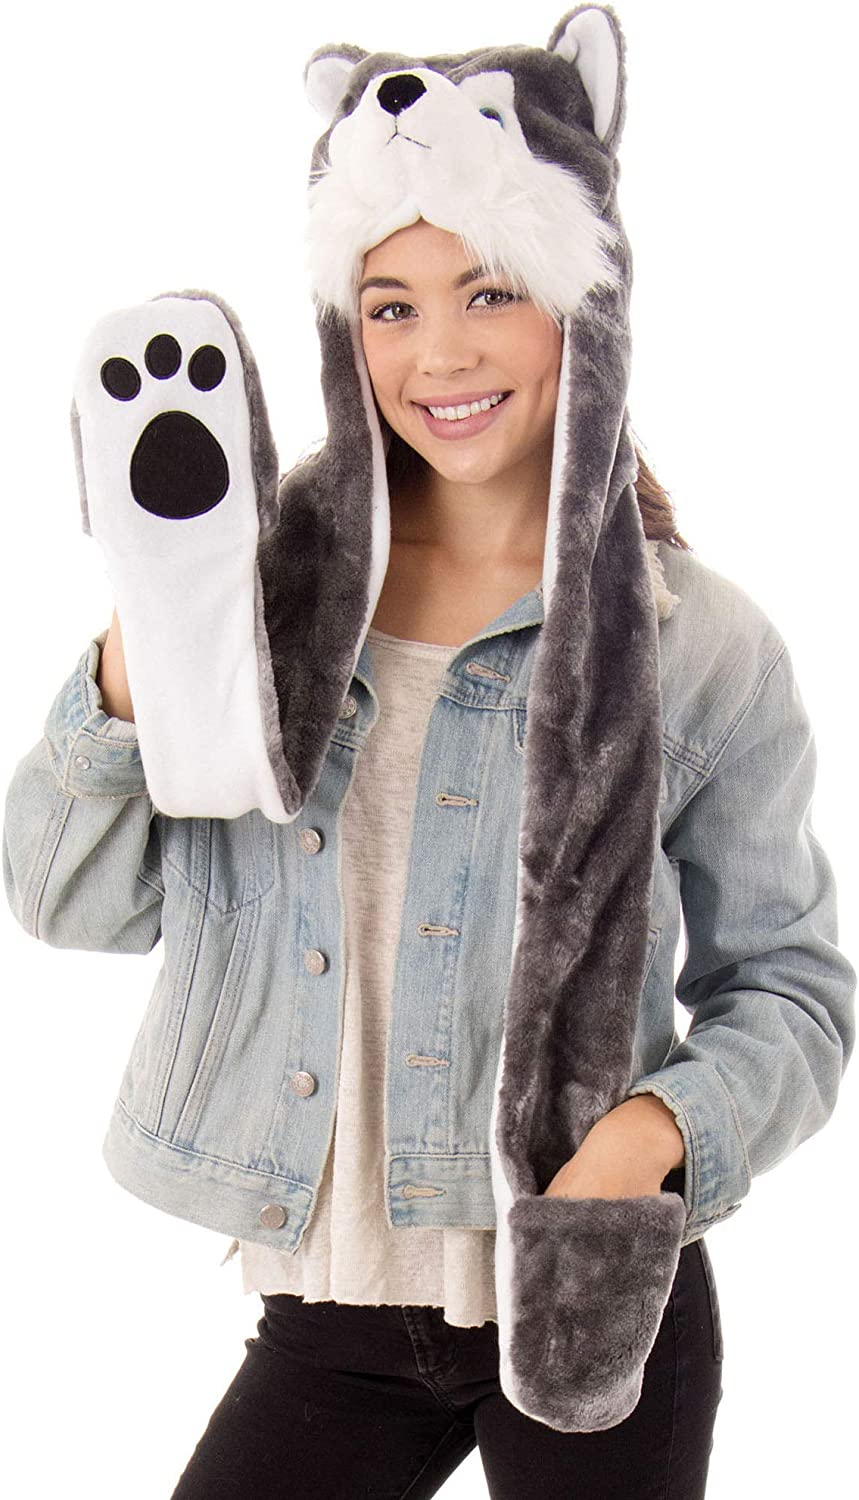 Simplicity 3-in-1 Multi-Functional Animal Scarf Hat Mitten Be super welcome Spasm price C